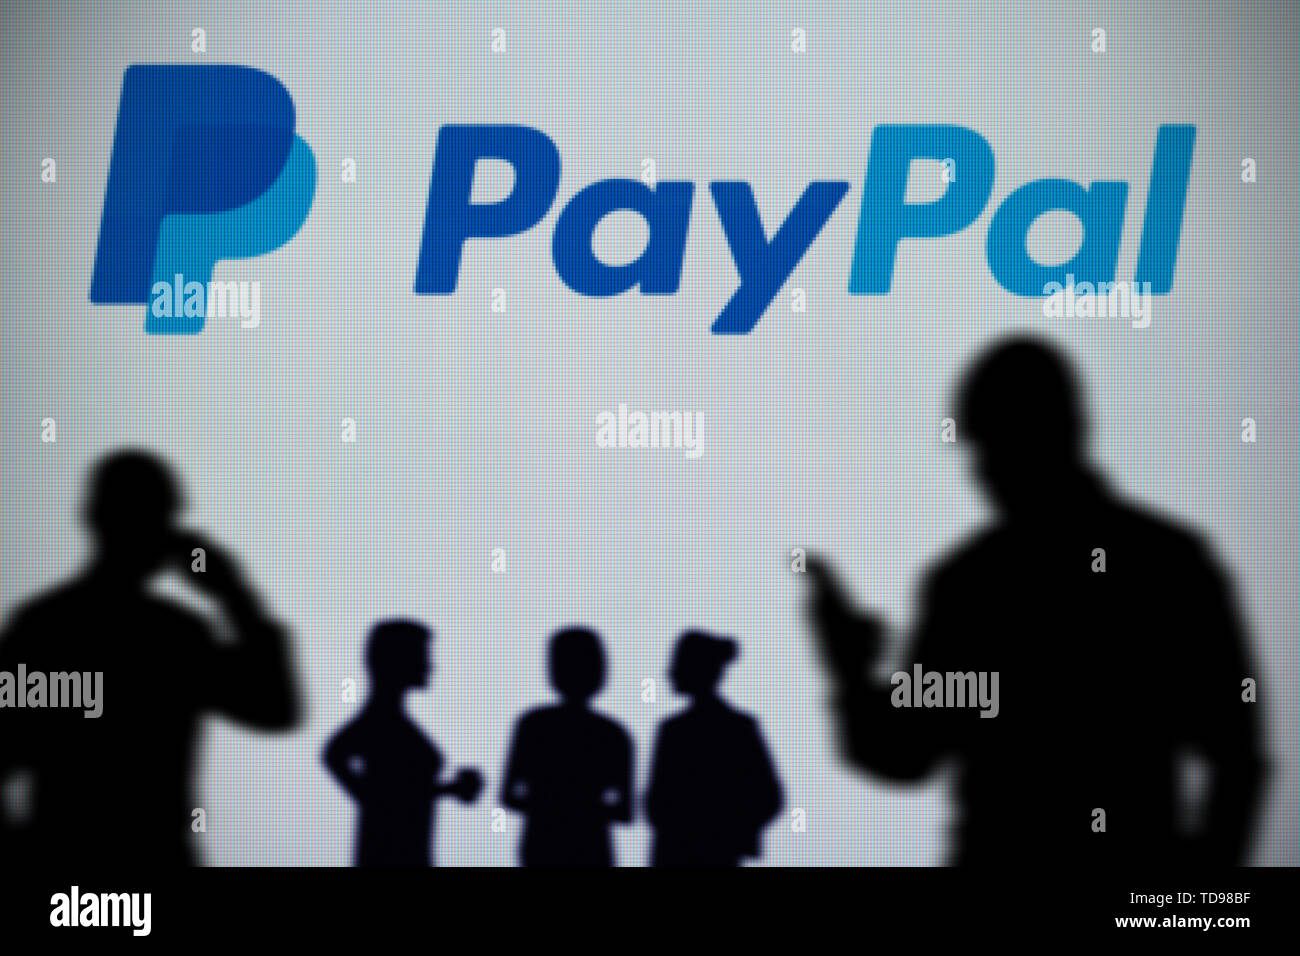 The PayPal logo is seen on an LED screen in the background while a silhouetted person uses a smartphone in the foreground (Editorial use only) - Stock Image